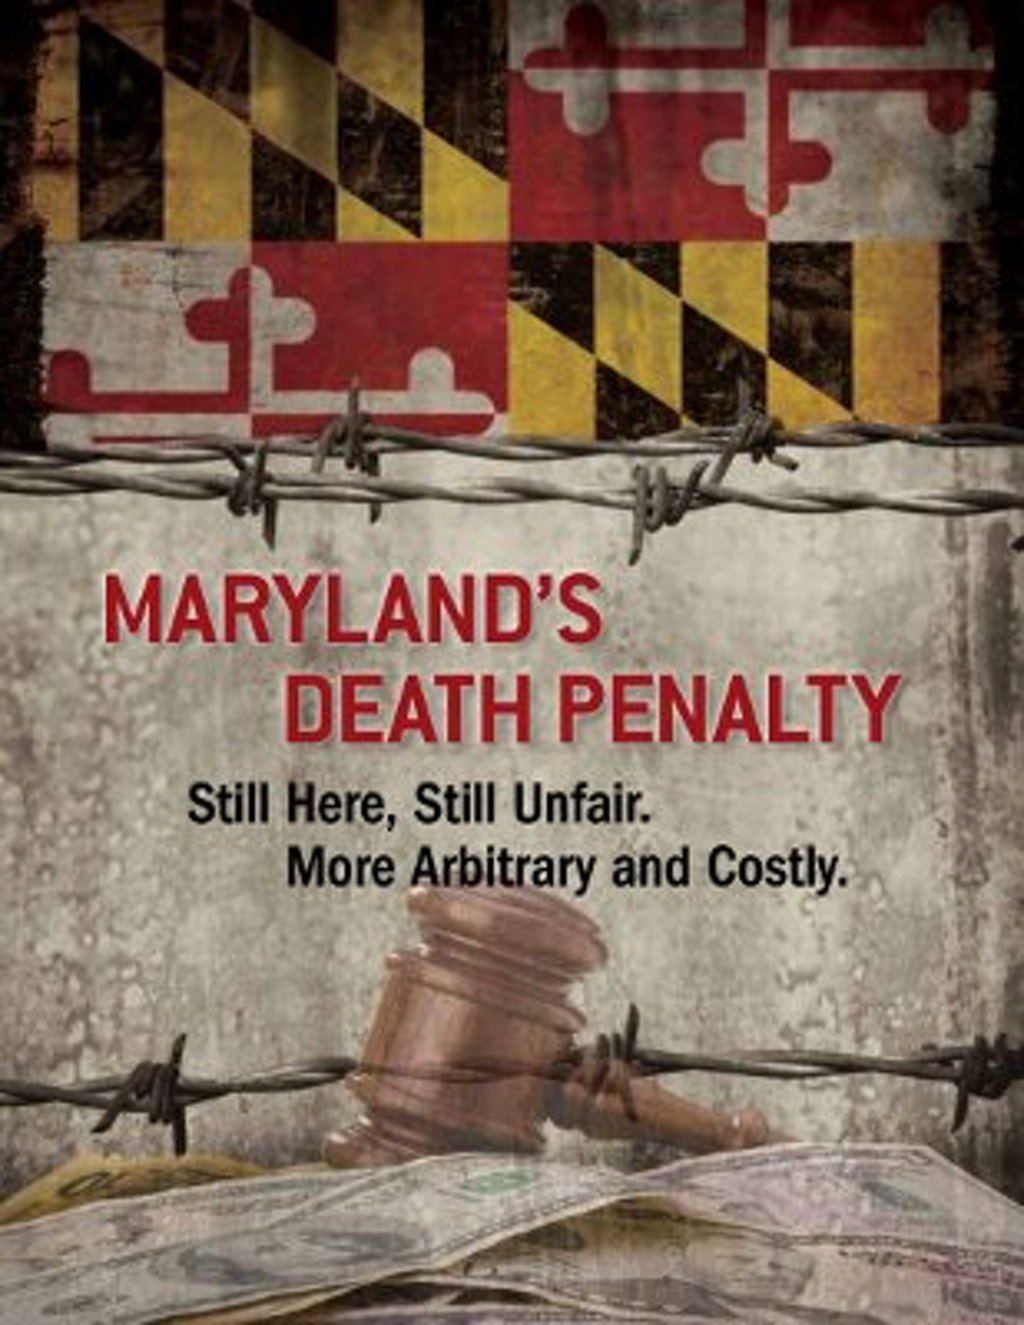 NEW RESOURCE: Legal Experts in Maryland Issue New Report on the State's Death Penalty